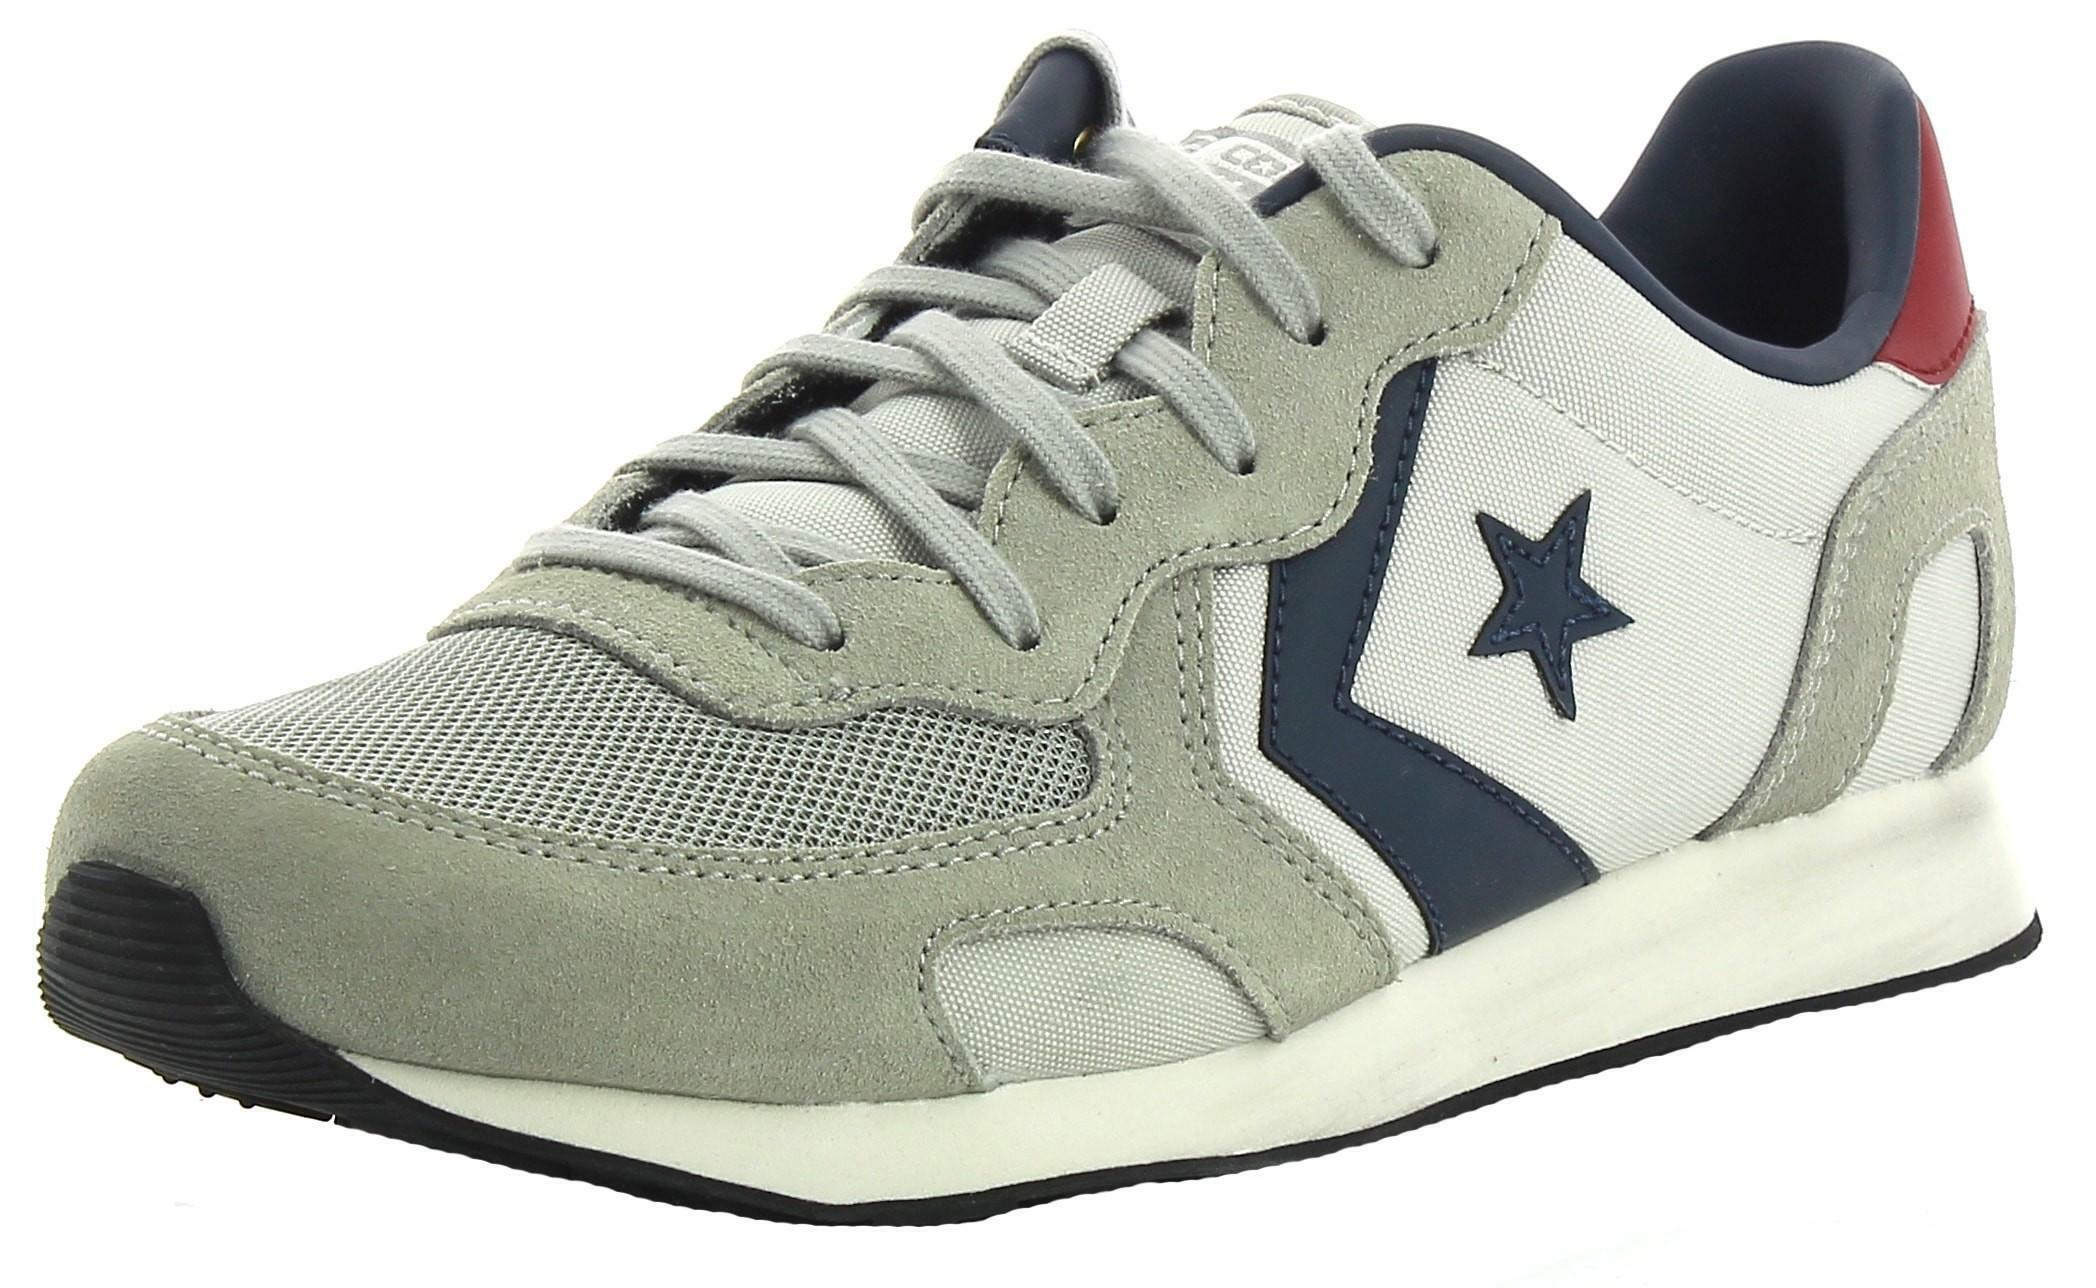 converse auckland ox